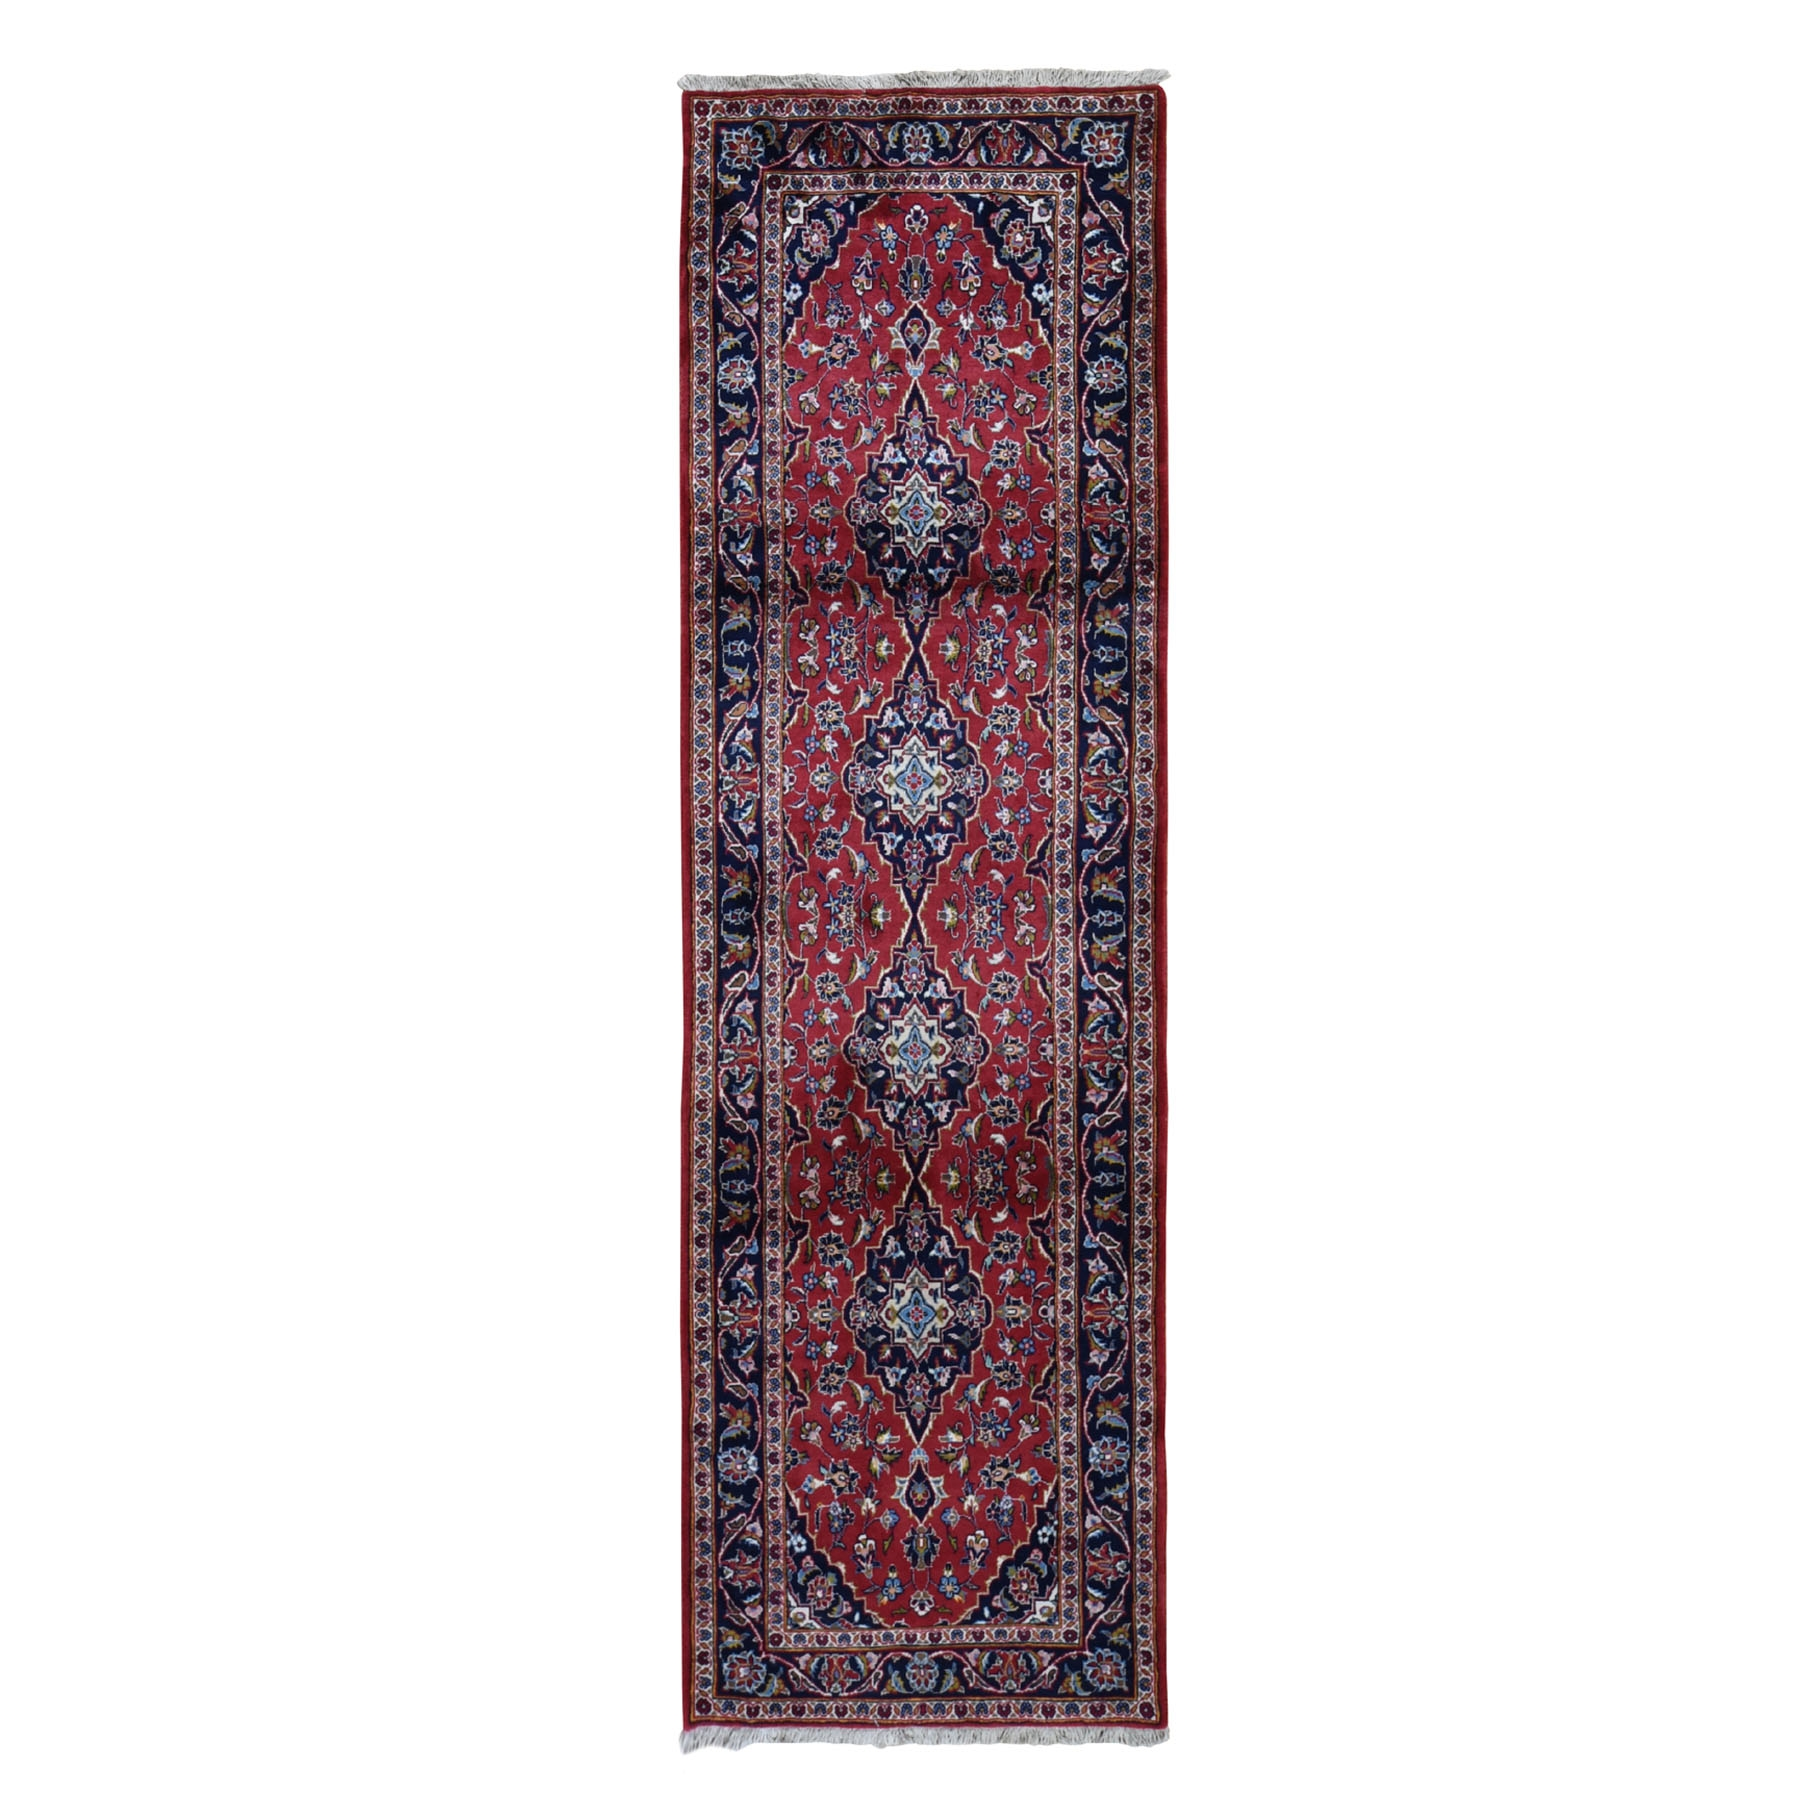 "3'3""x11'3"" Red New Persian Kashan Full Pile Runner Pure Wool hand Knotted Oriental Rug"